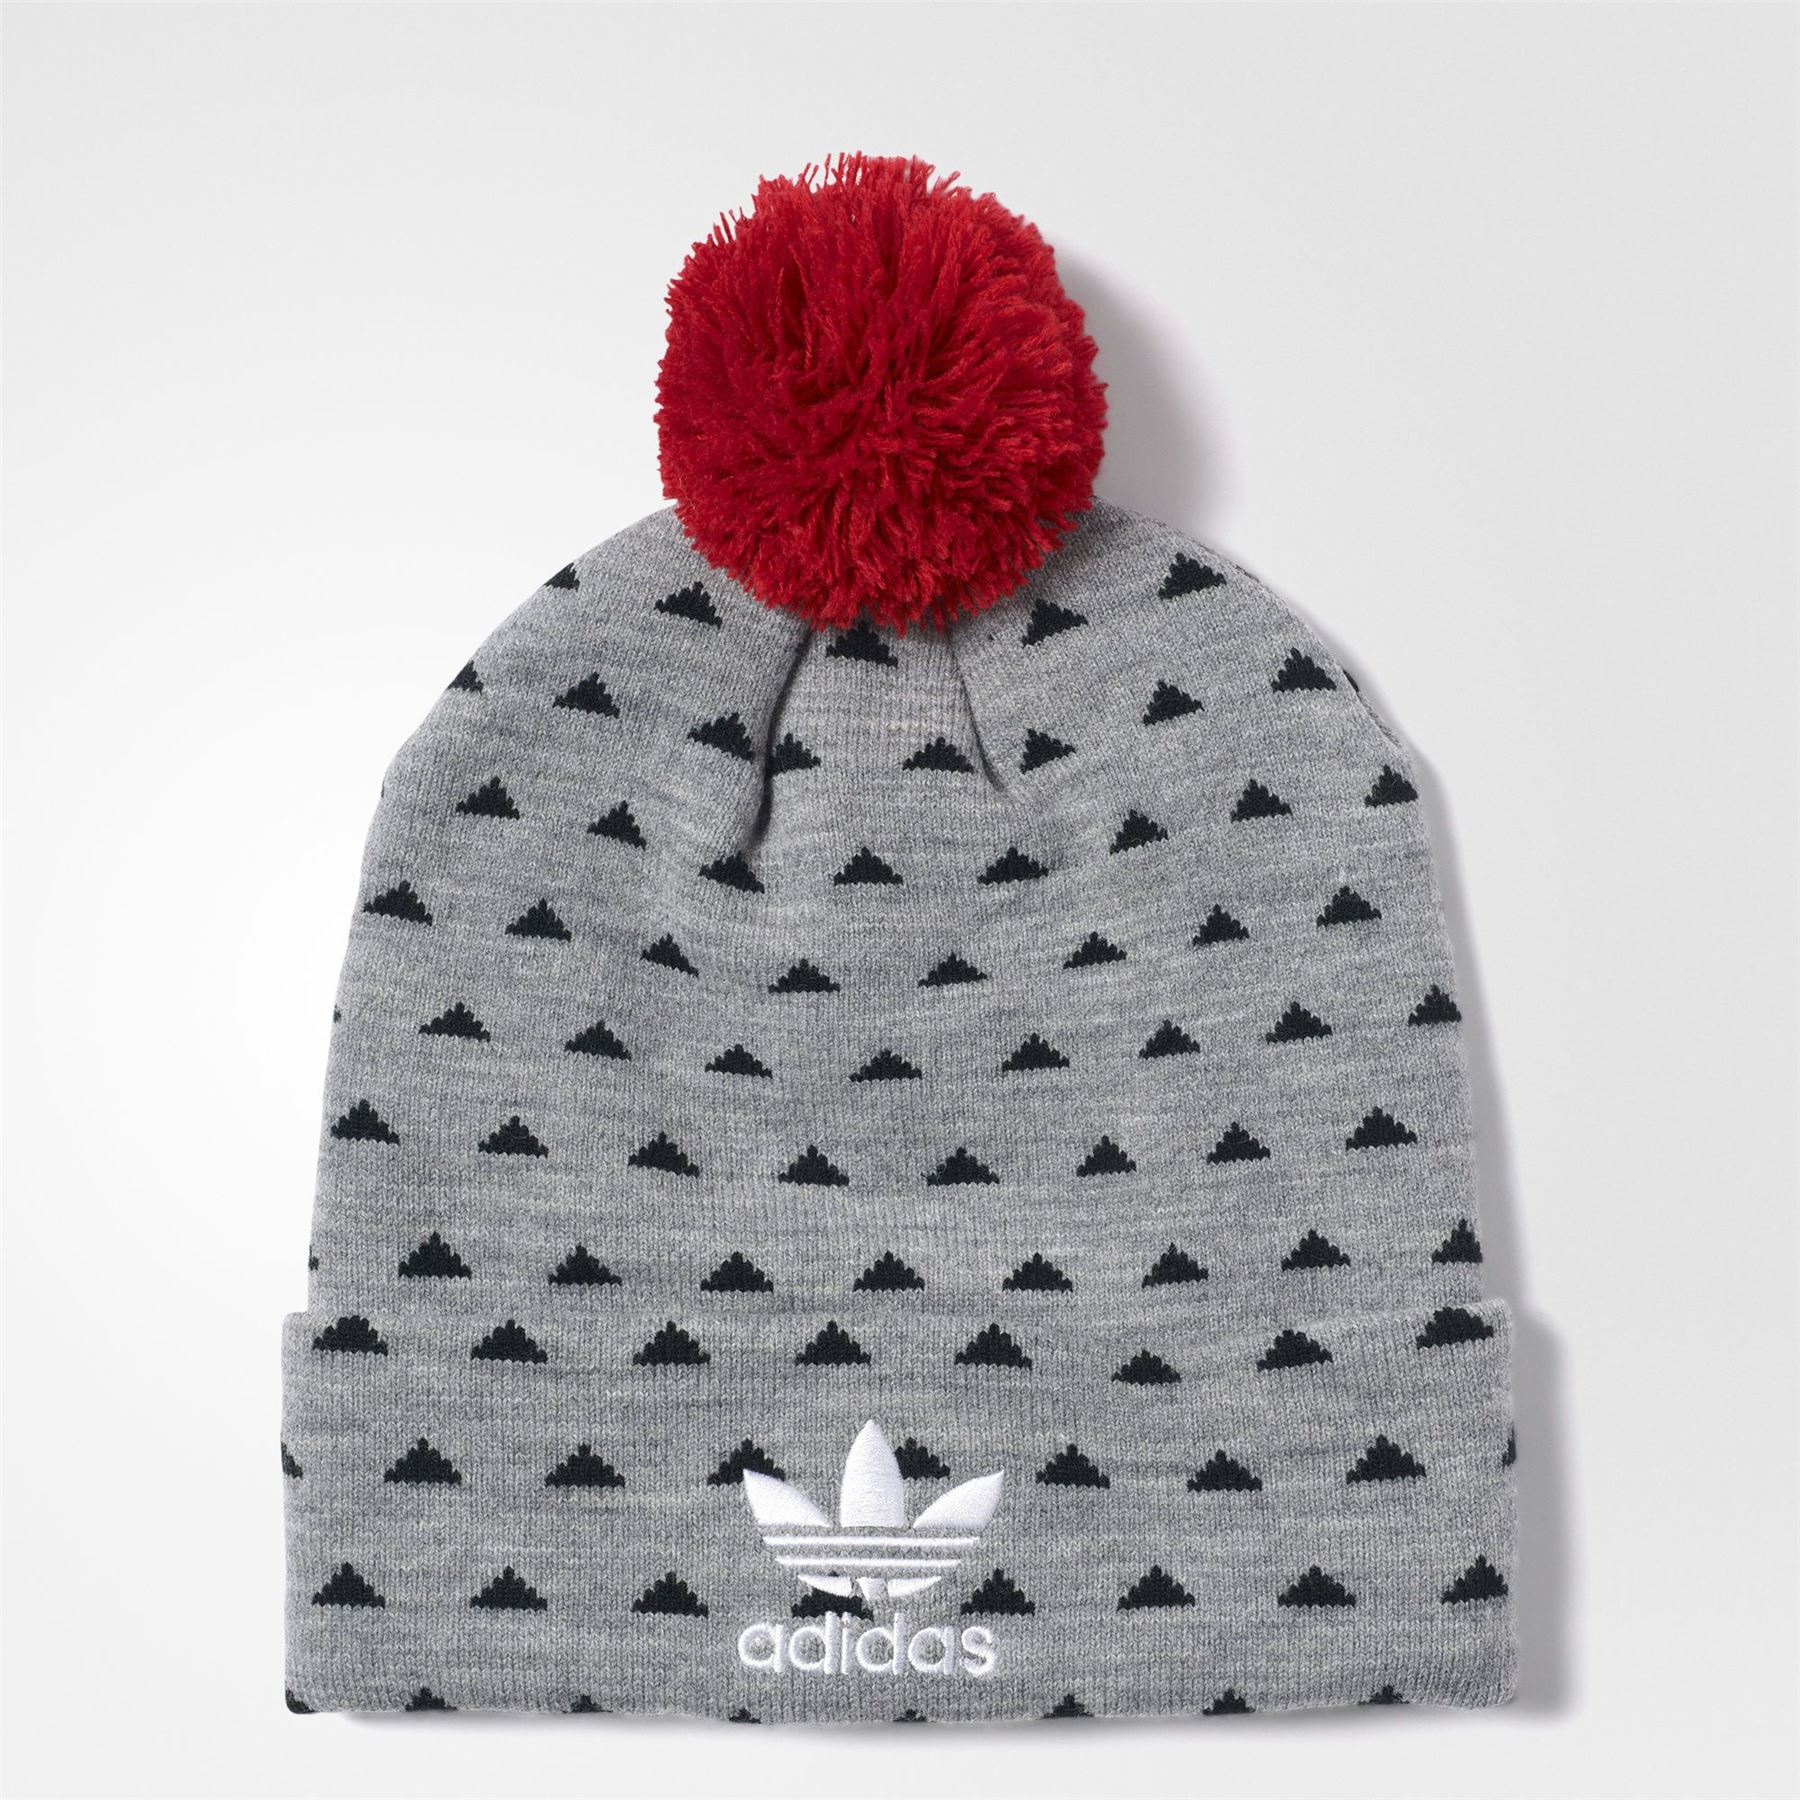 Details about adidas ORIGINALS PHARRELL WILLIAMS HU BEANIE WOMEN S GREY  TREFOIL 3 STRIPES WARM 3d91115c6cd5